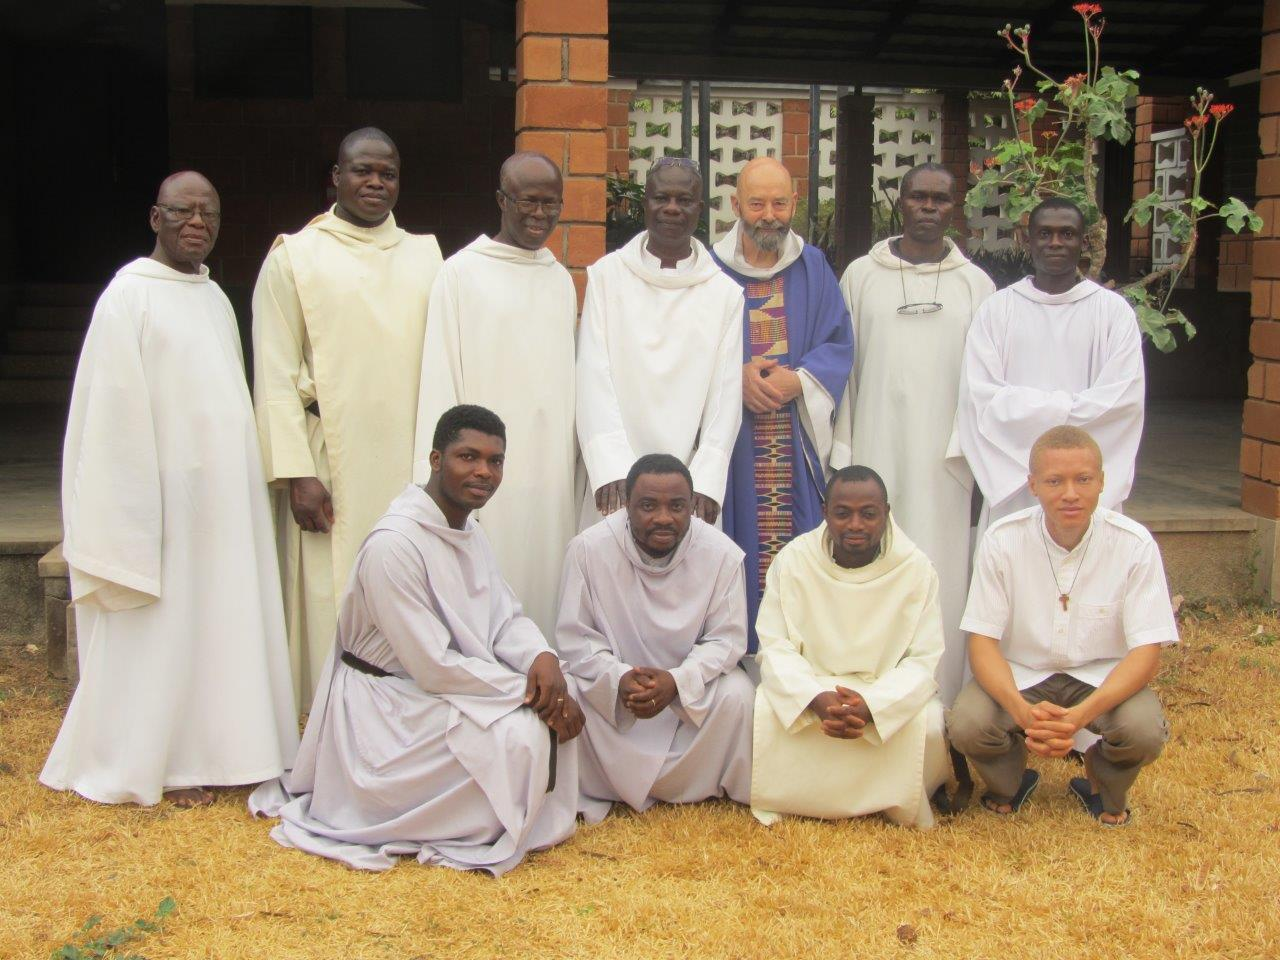 The Kristo Buase Community with Fr. Giles